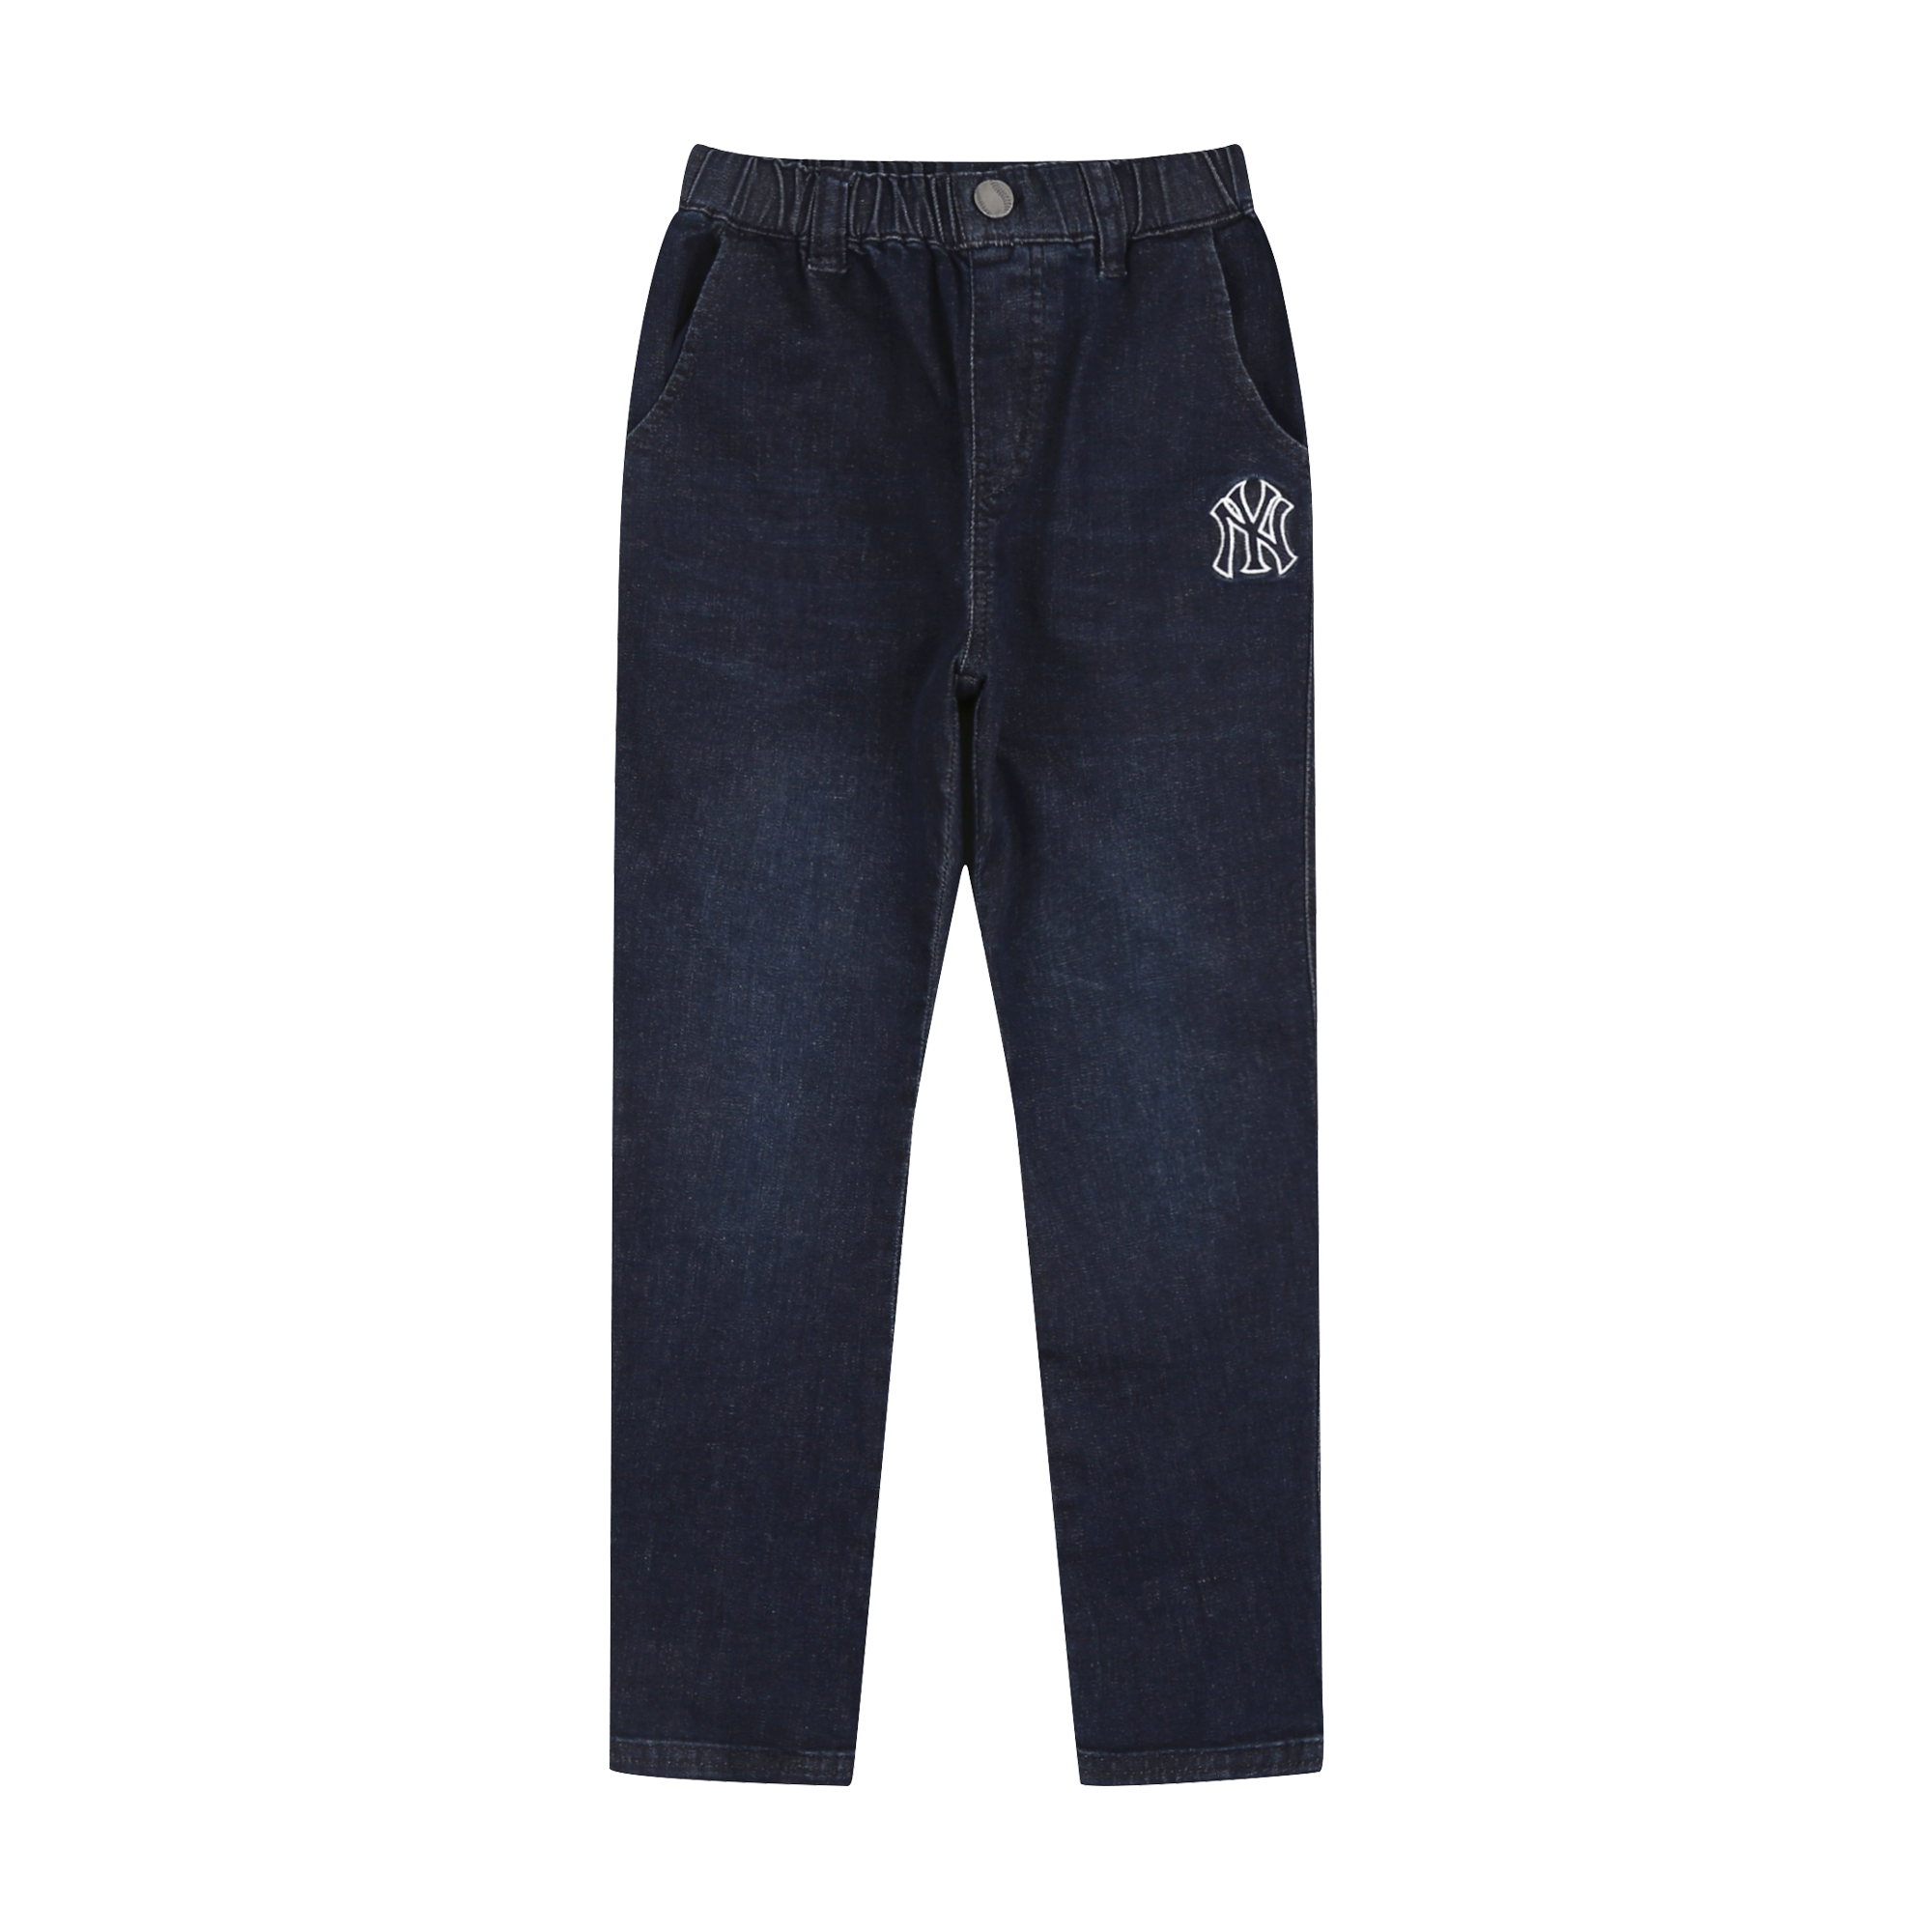 NEW YORK YANKEES UNISEX LOGO BAGGY FIT JOGGER DENIM PANTS